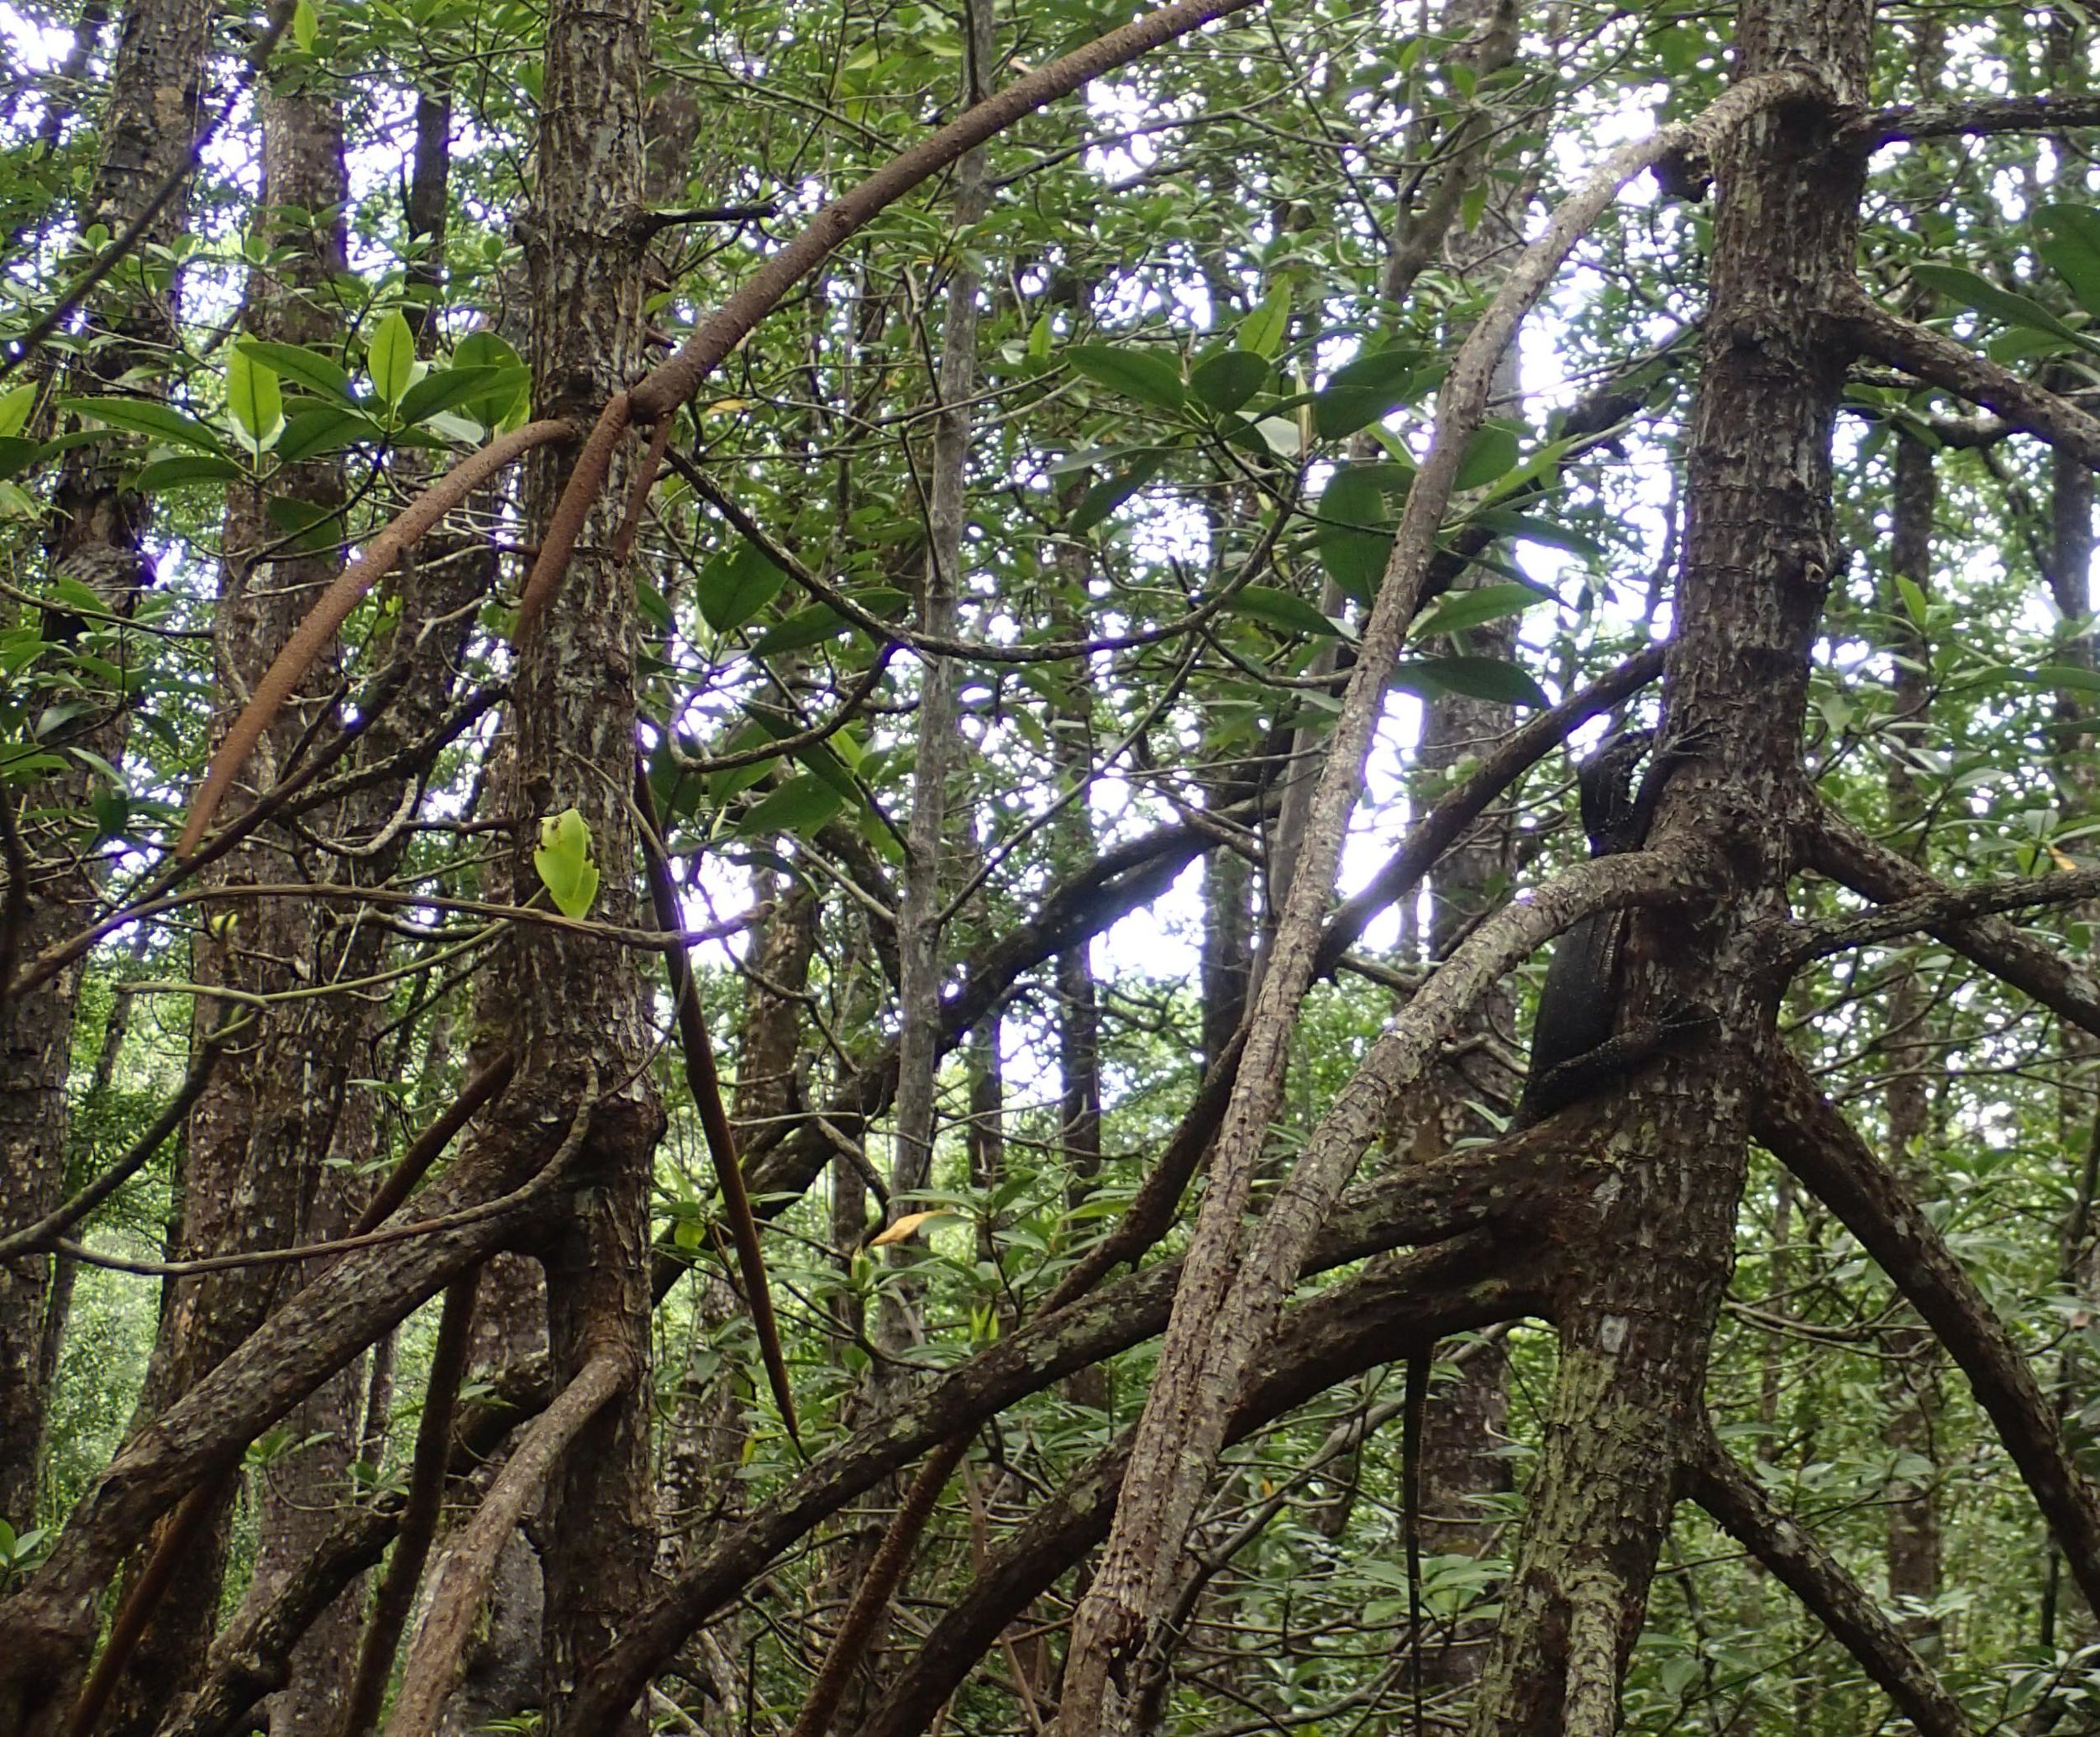 monitor lizard in tree.jpg